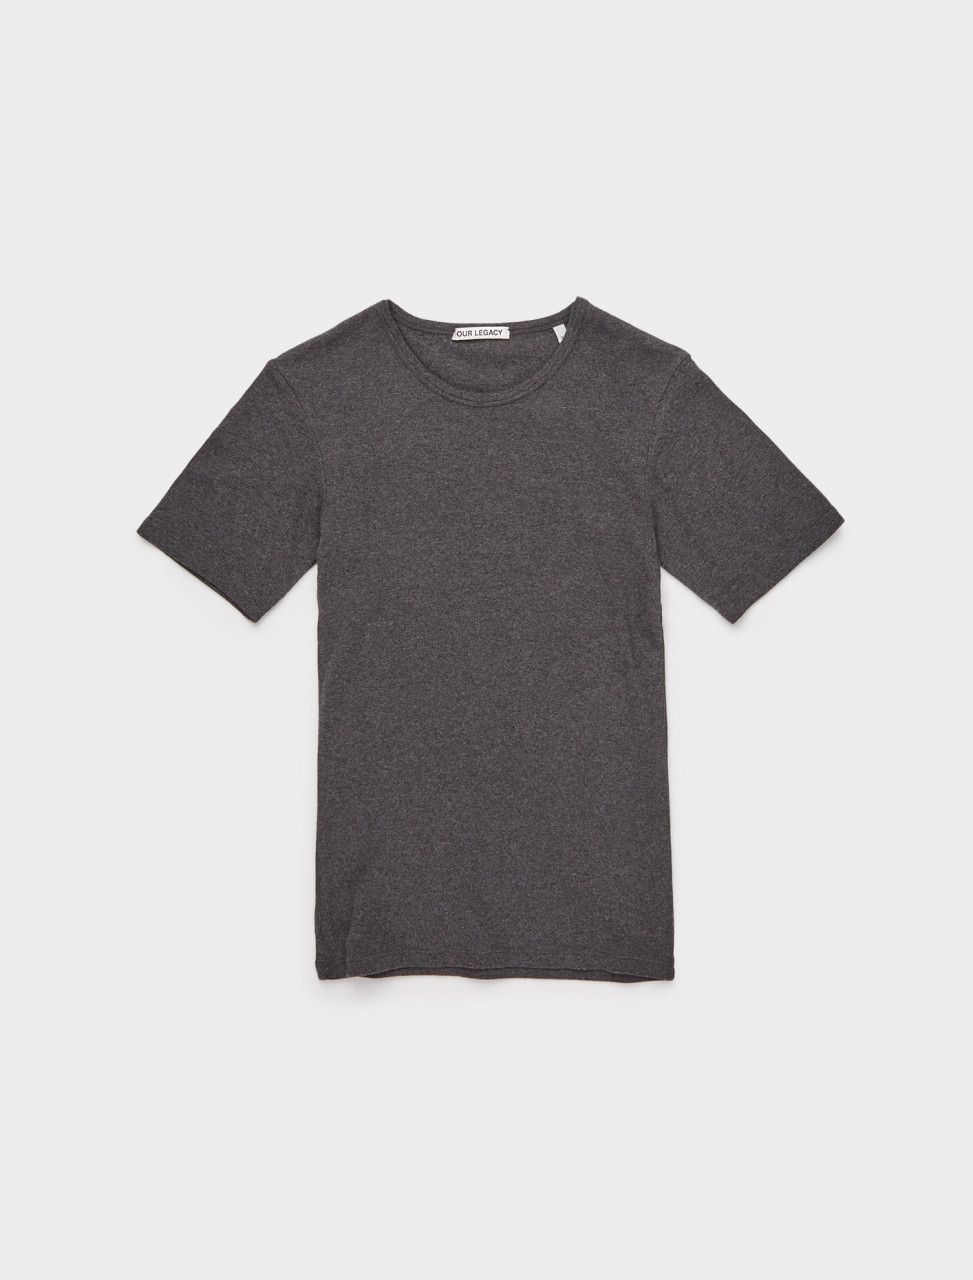 150-W4206SDG OUR LEGACY SLIM JERSEY SHORTSLEEVE GREY MELANGE